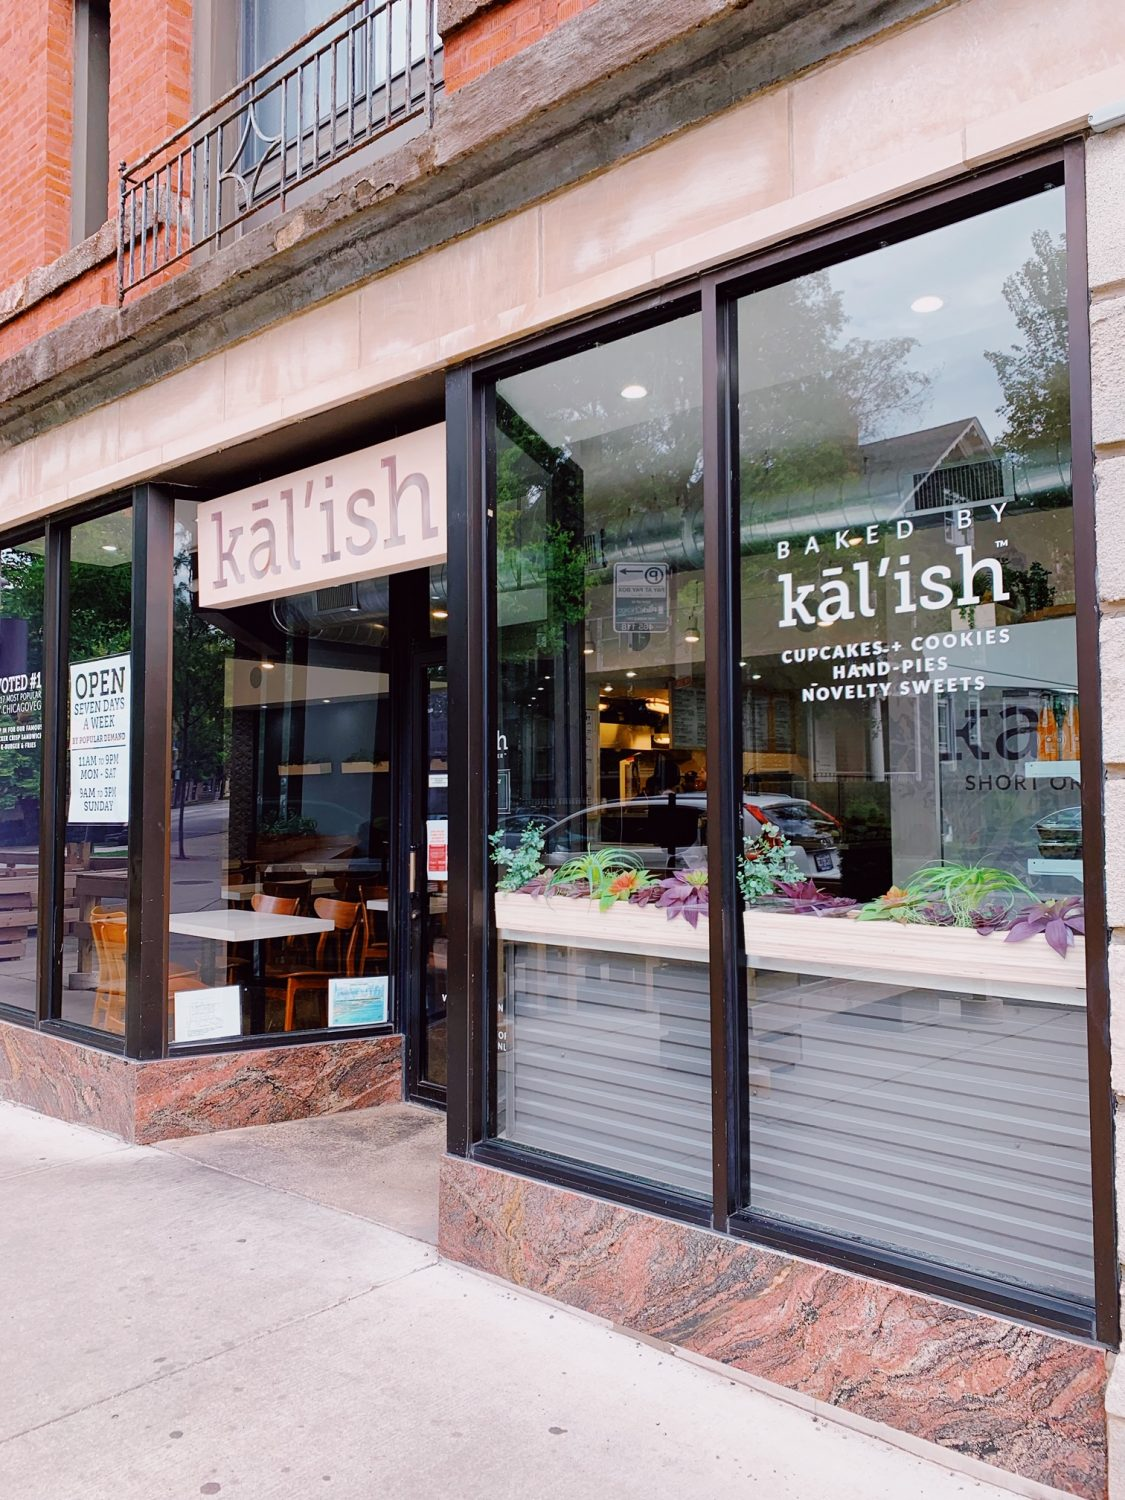 Kal'ish Vegan Restaurant in Chicago